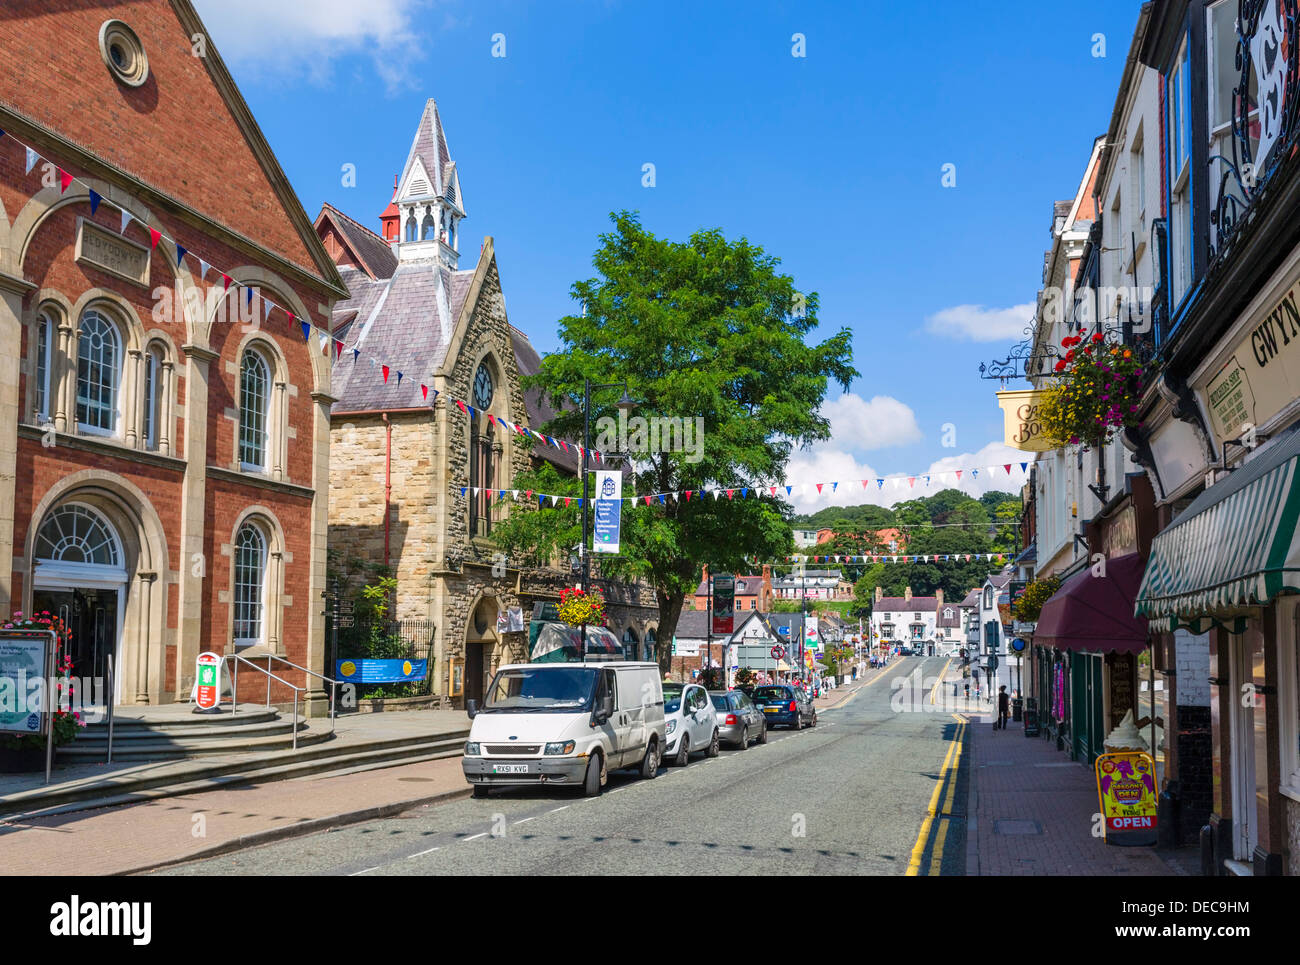 Castle street in the centre of the town of Llangollen, Denbighshire, Wales, UK Stock Photo